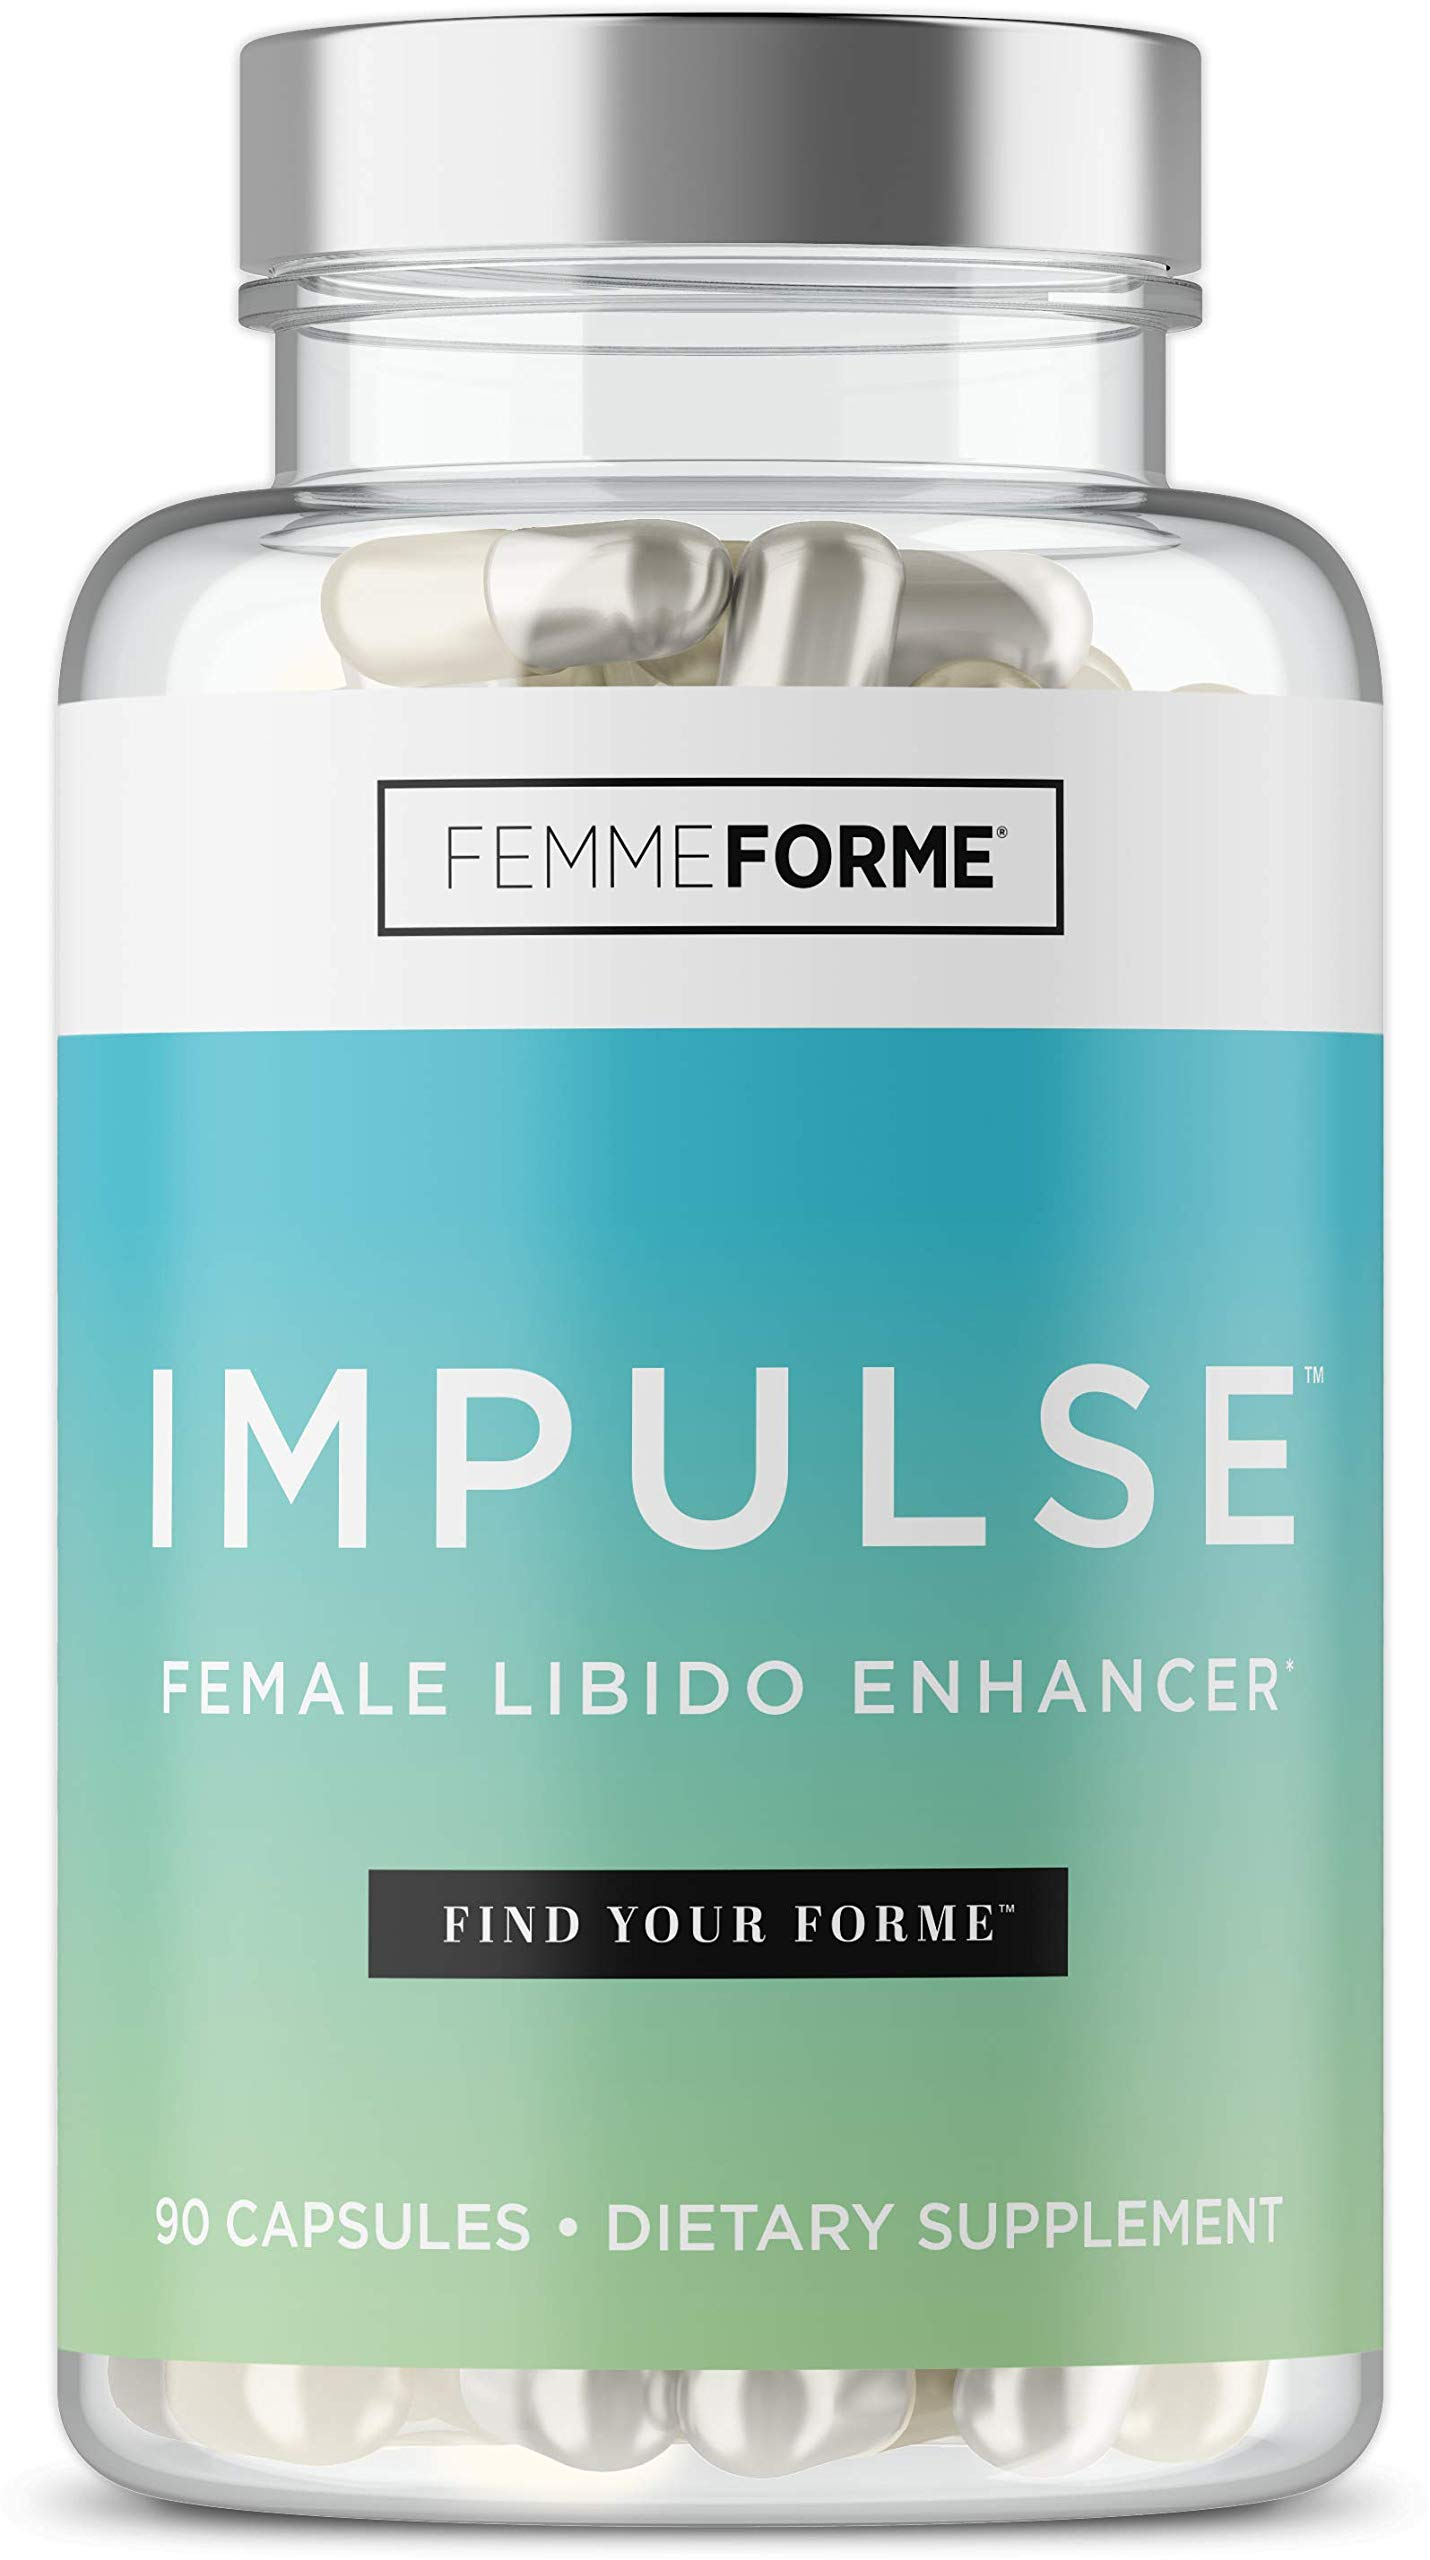 Femme Forme Impulse Libido Enhancer for Women: Natural Intimacy Formula for Women Feautring Zinc and Maca Root Extract 4:1 - Increases Desire and Supports a Healthy Female Libido, 90 Count